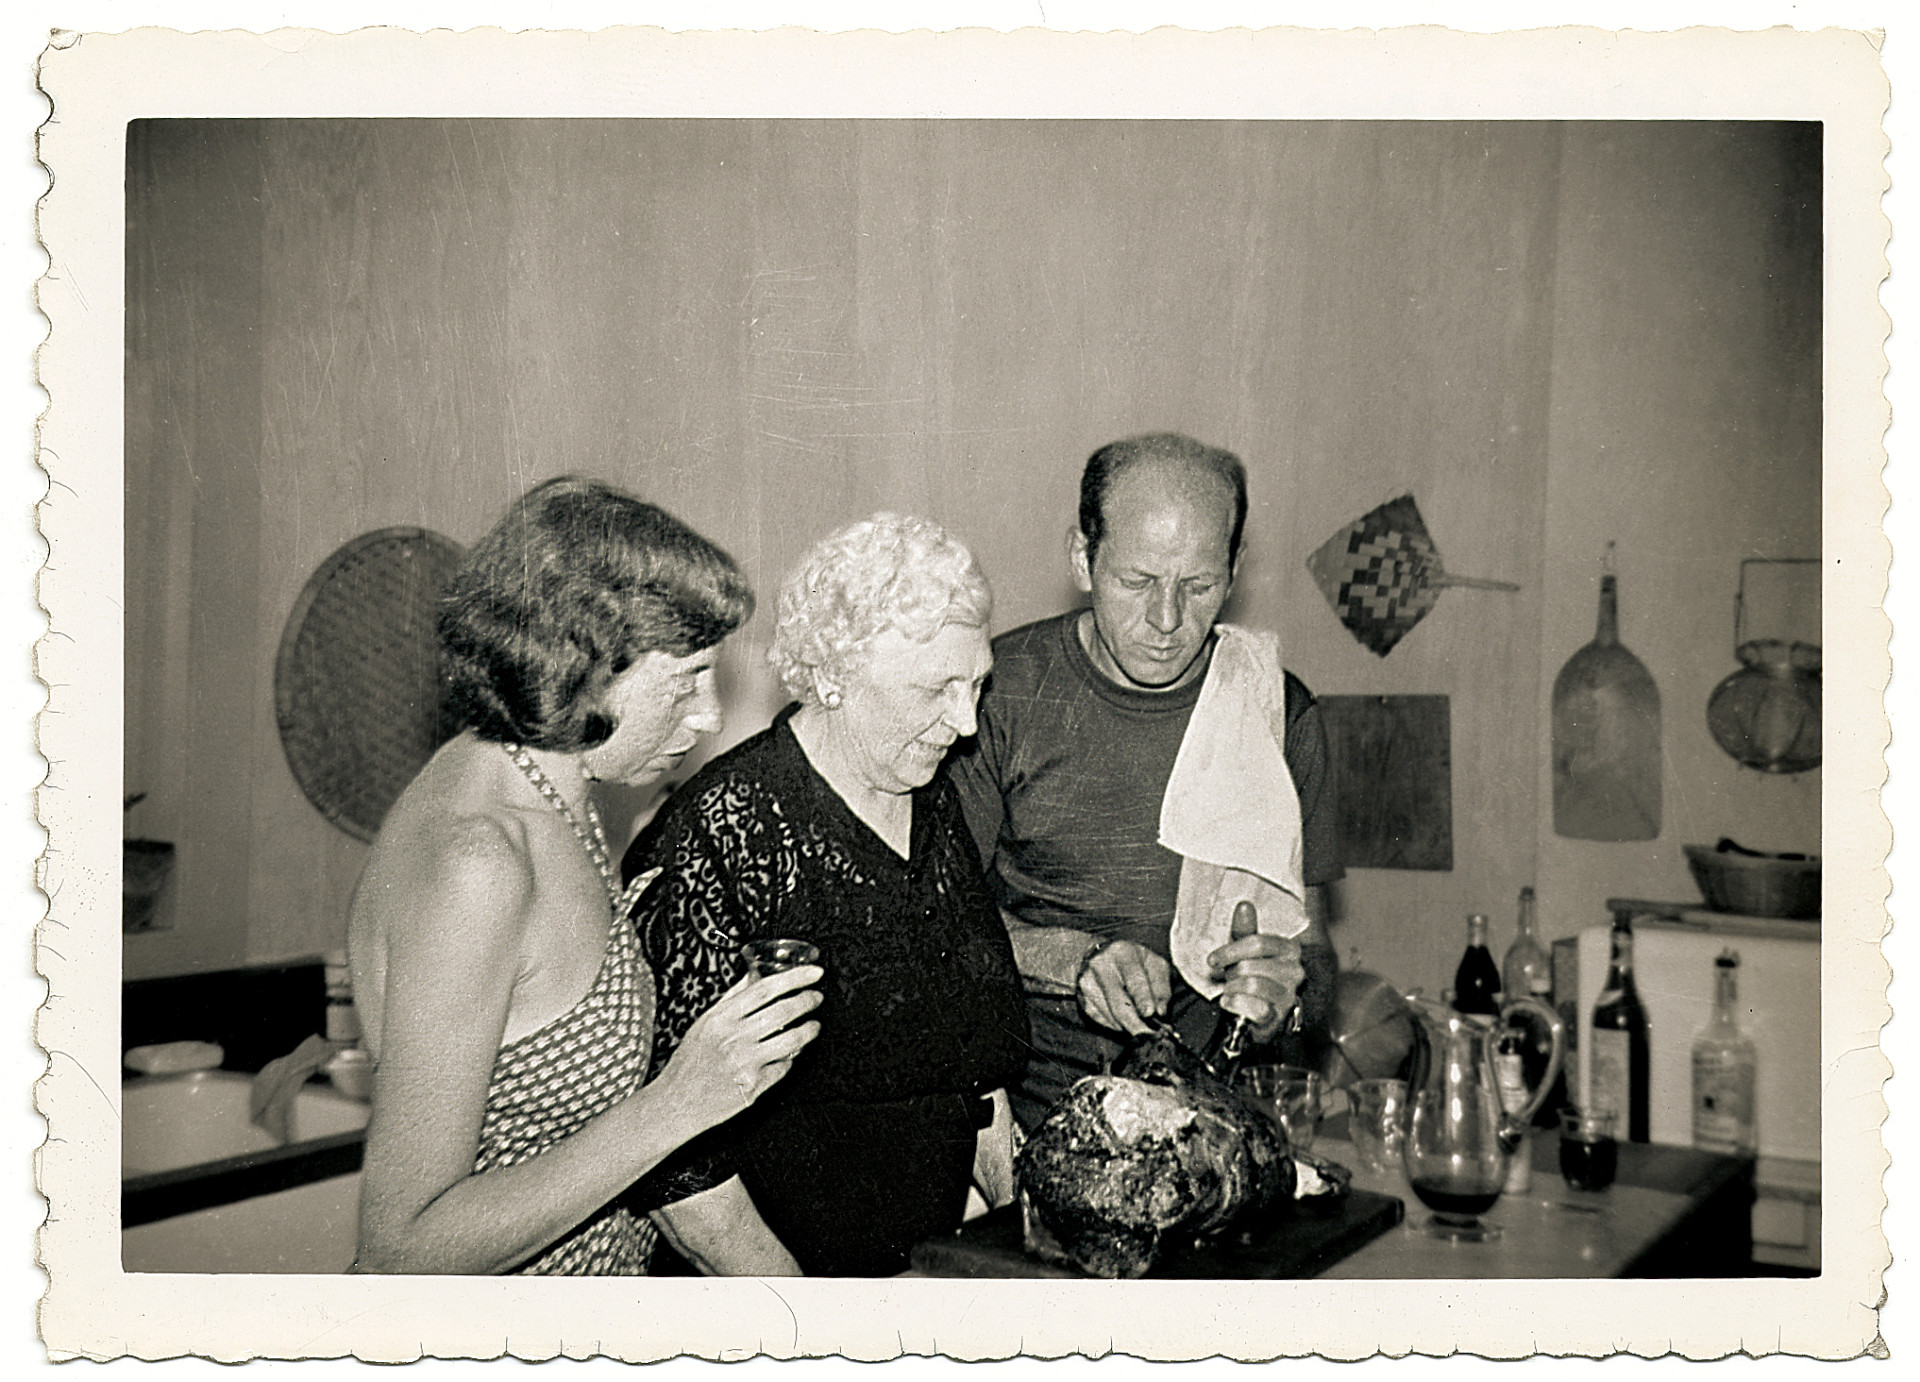 Jackson Pollock cooks with his wife, the artist Lee Krasner, and his mother, Stella Pollock, in the kitchen of his home in Springs, in East Hampton, N.Y., 1950